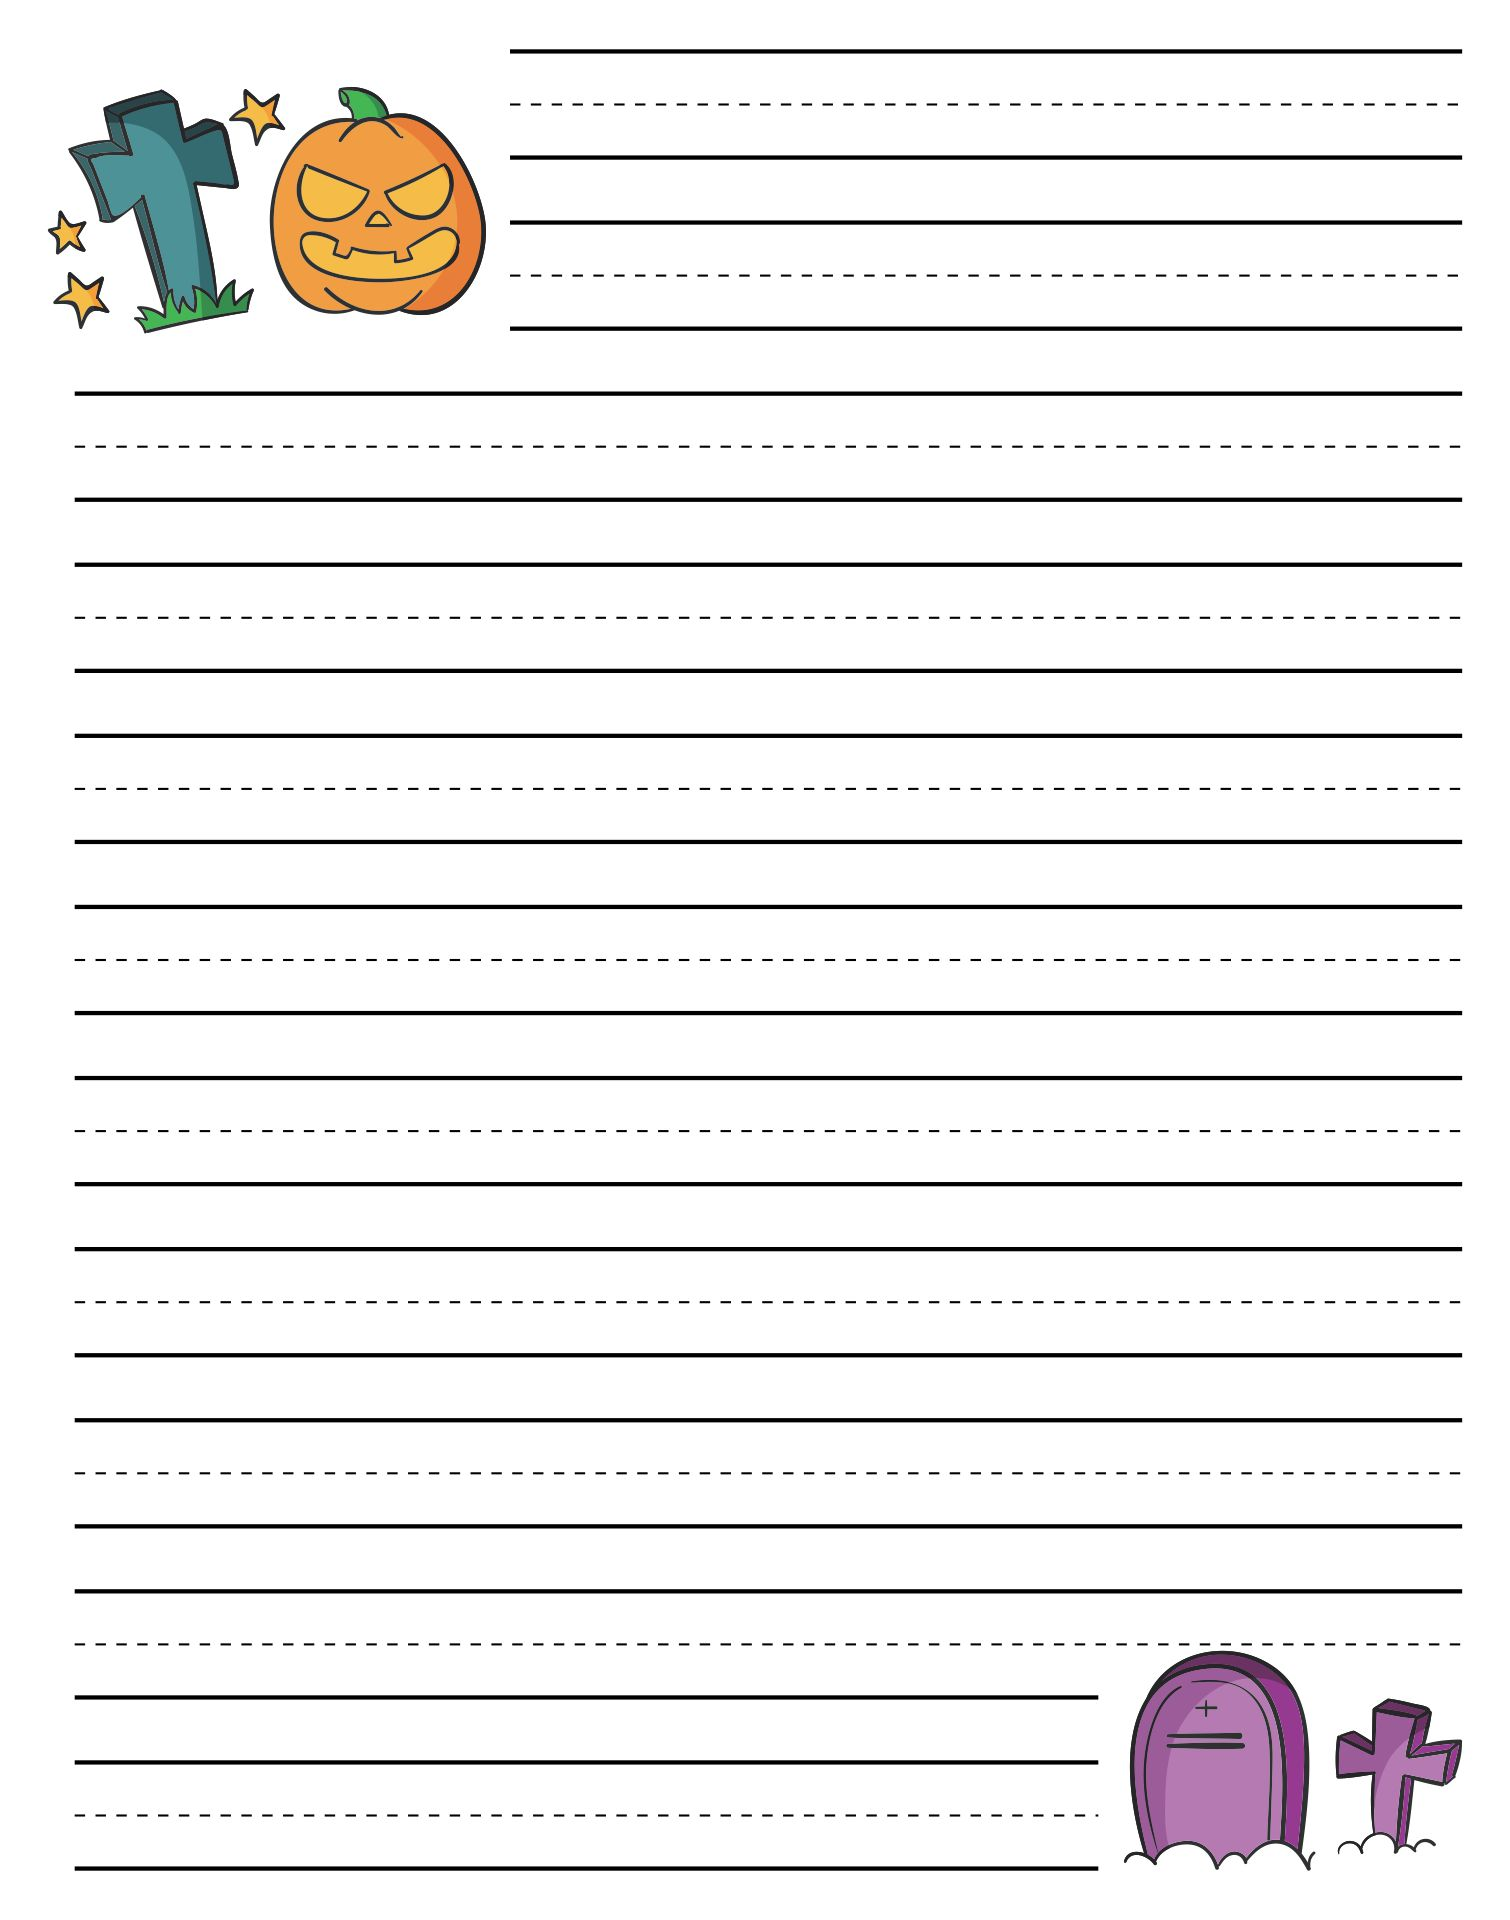 6 Images of Free Printable Halloween Writing Paper